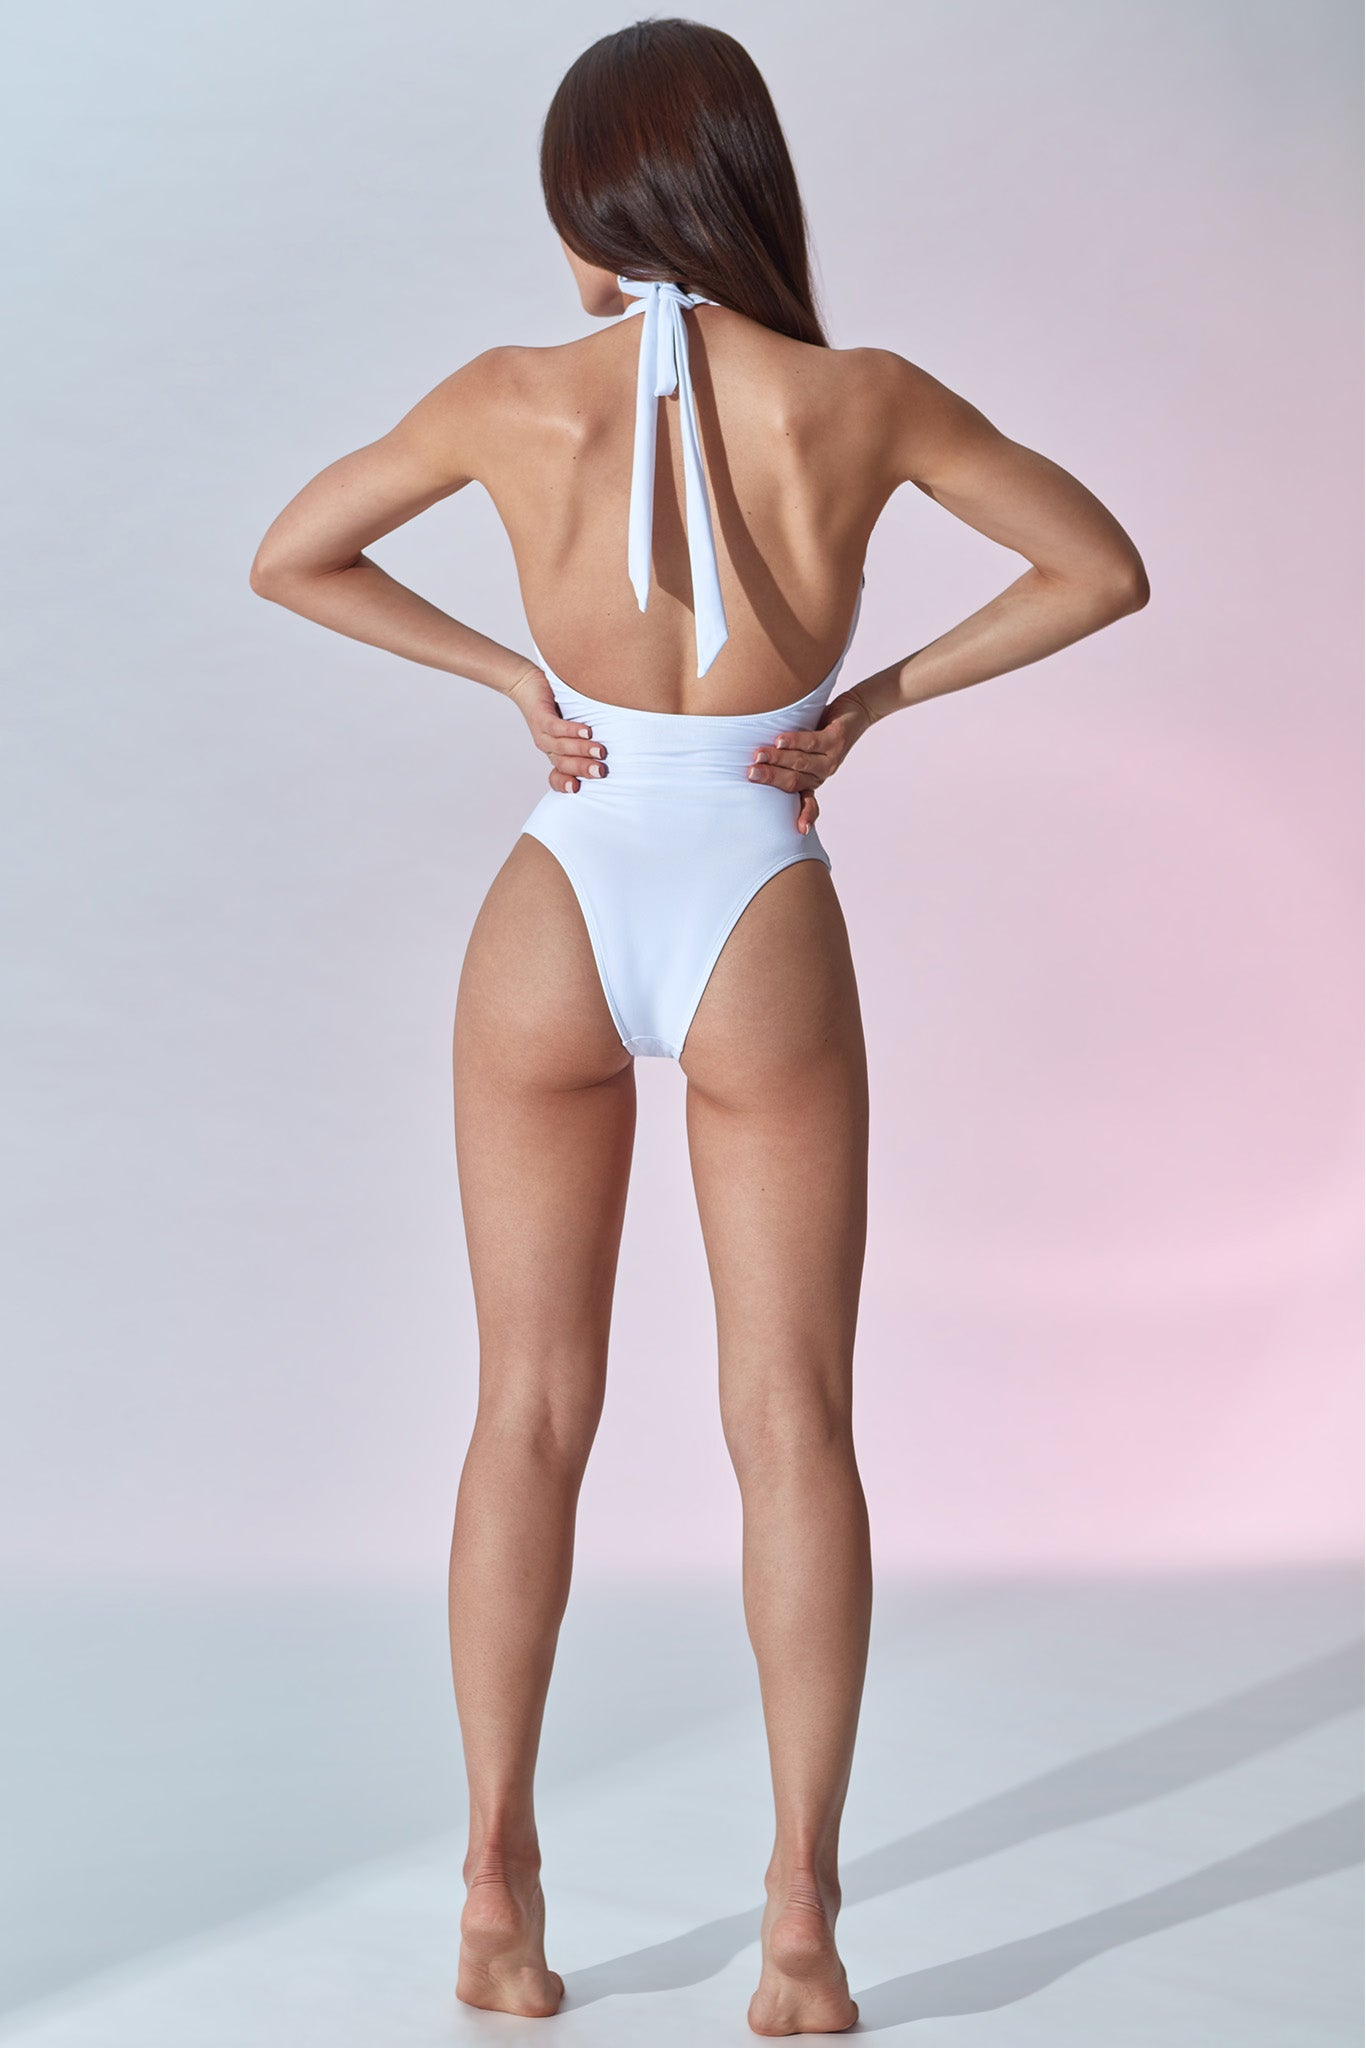 Setai Swimsuit - White - Back